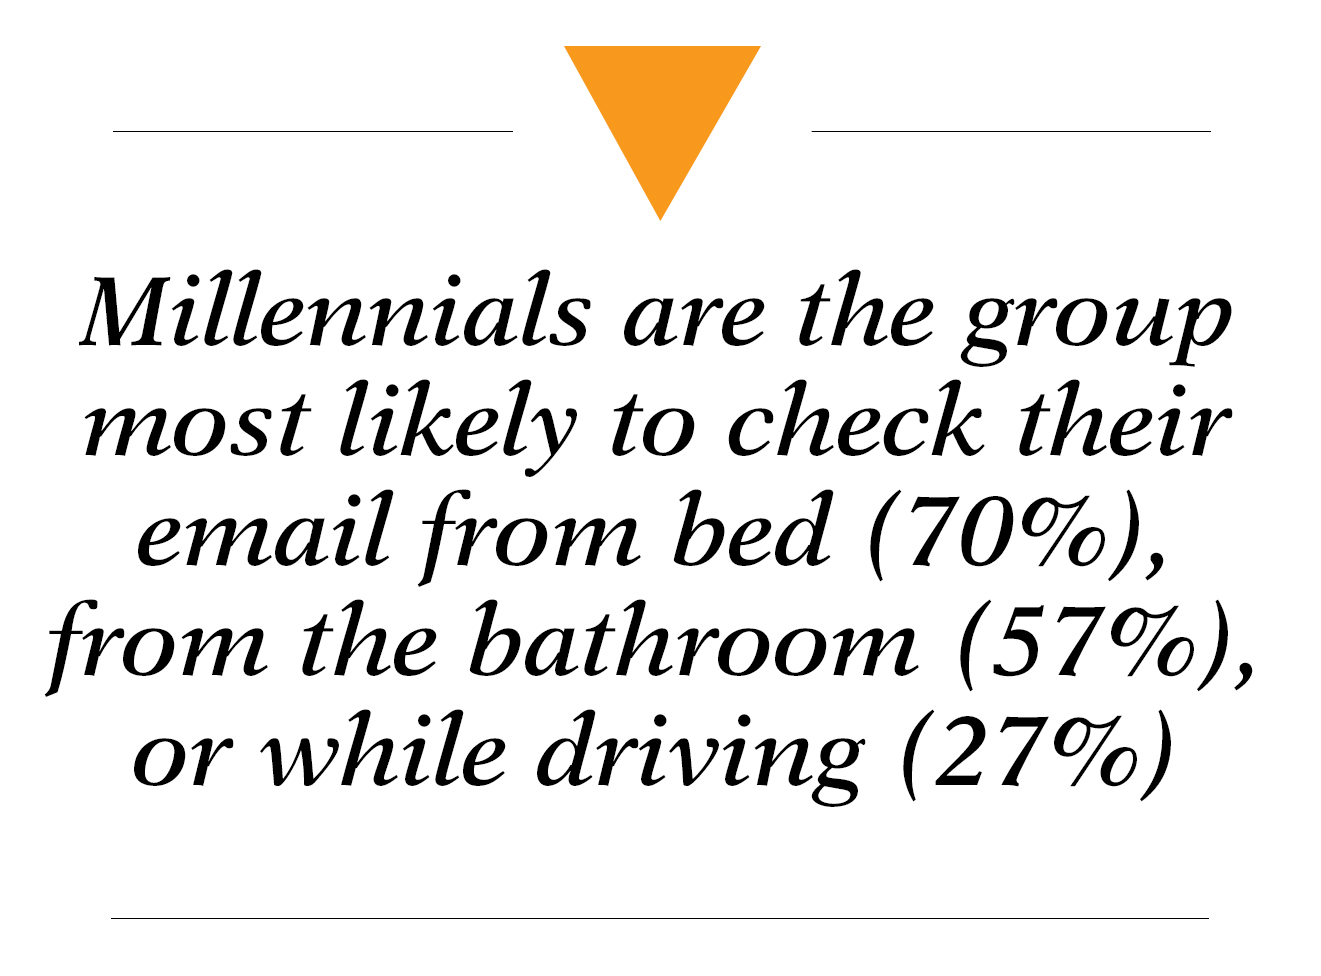 Millennials are the group most likely to check their email from bed (70%), from the bathroom (57%), or while driving (27%) - Advance Media New York email marketing